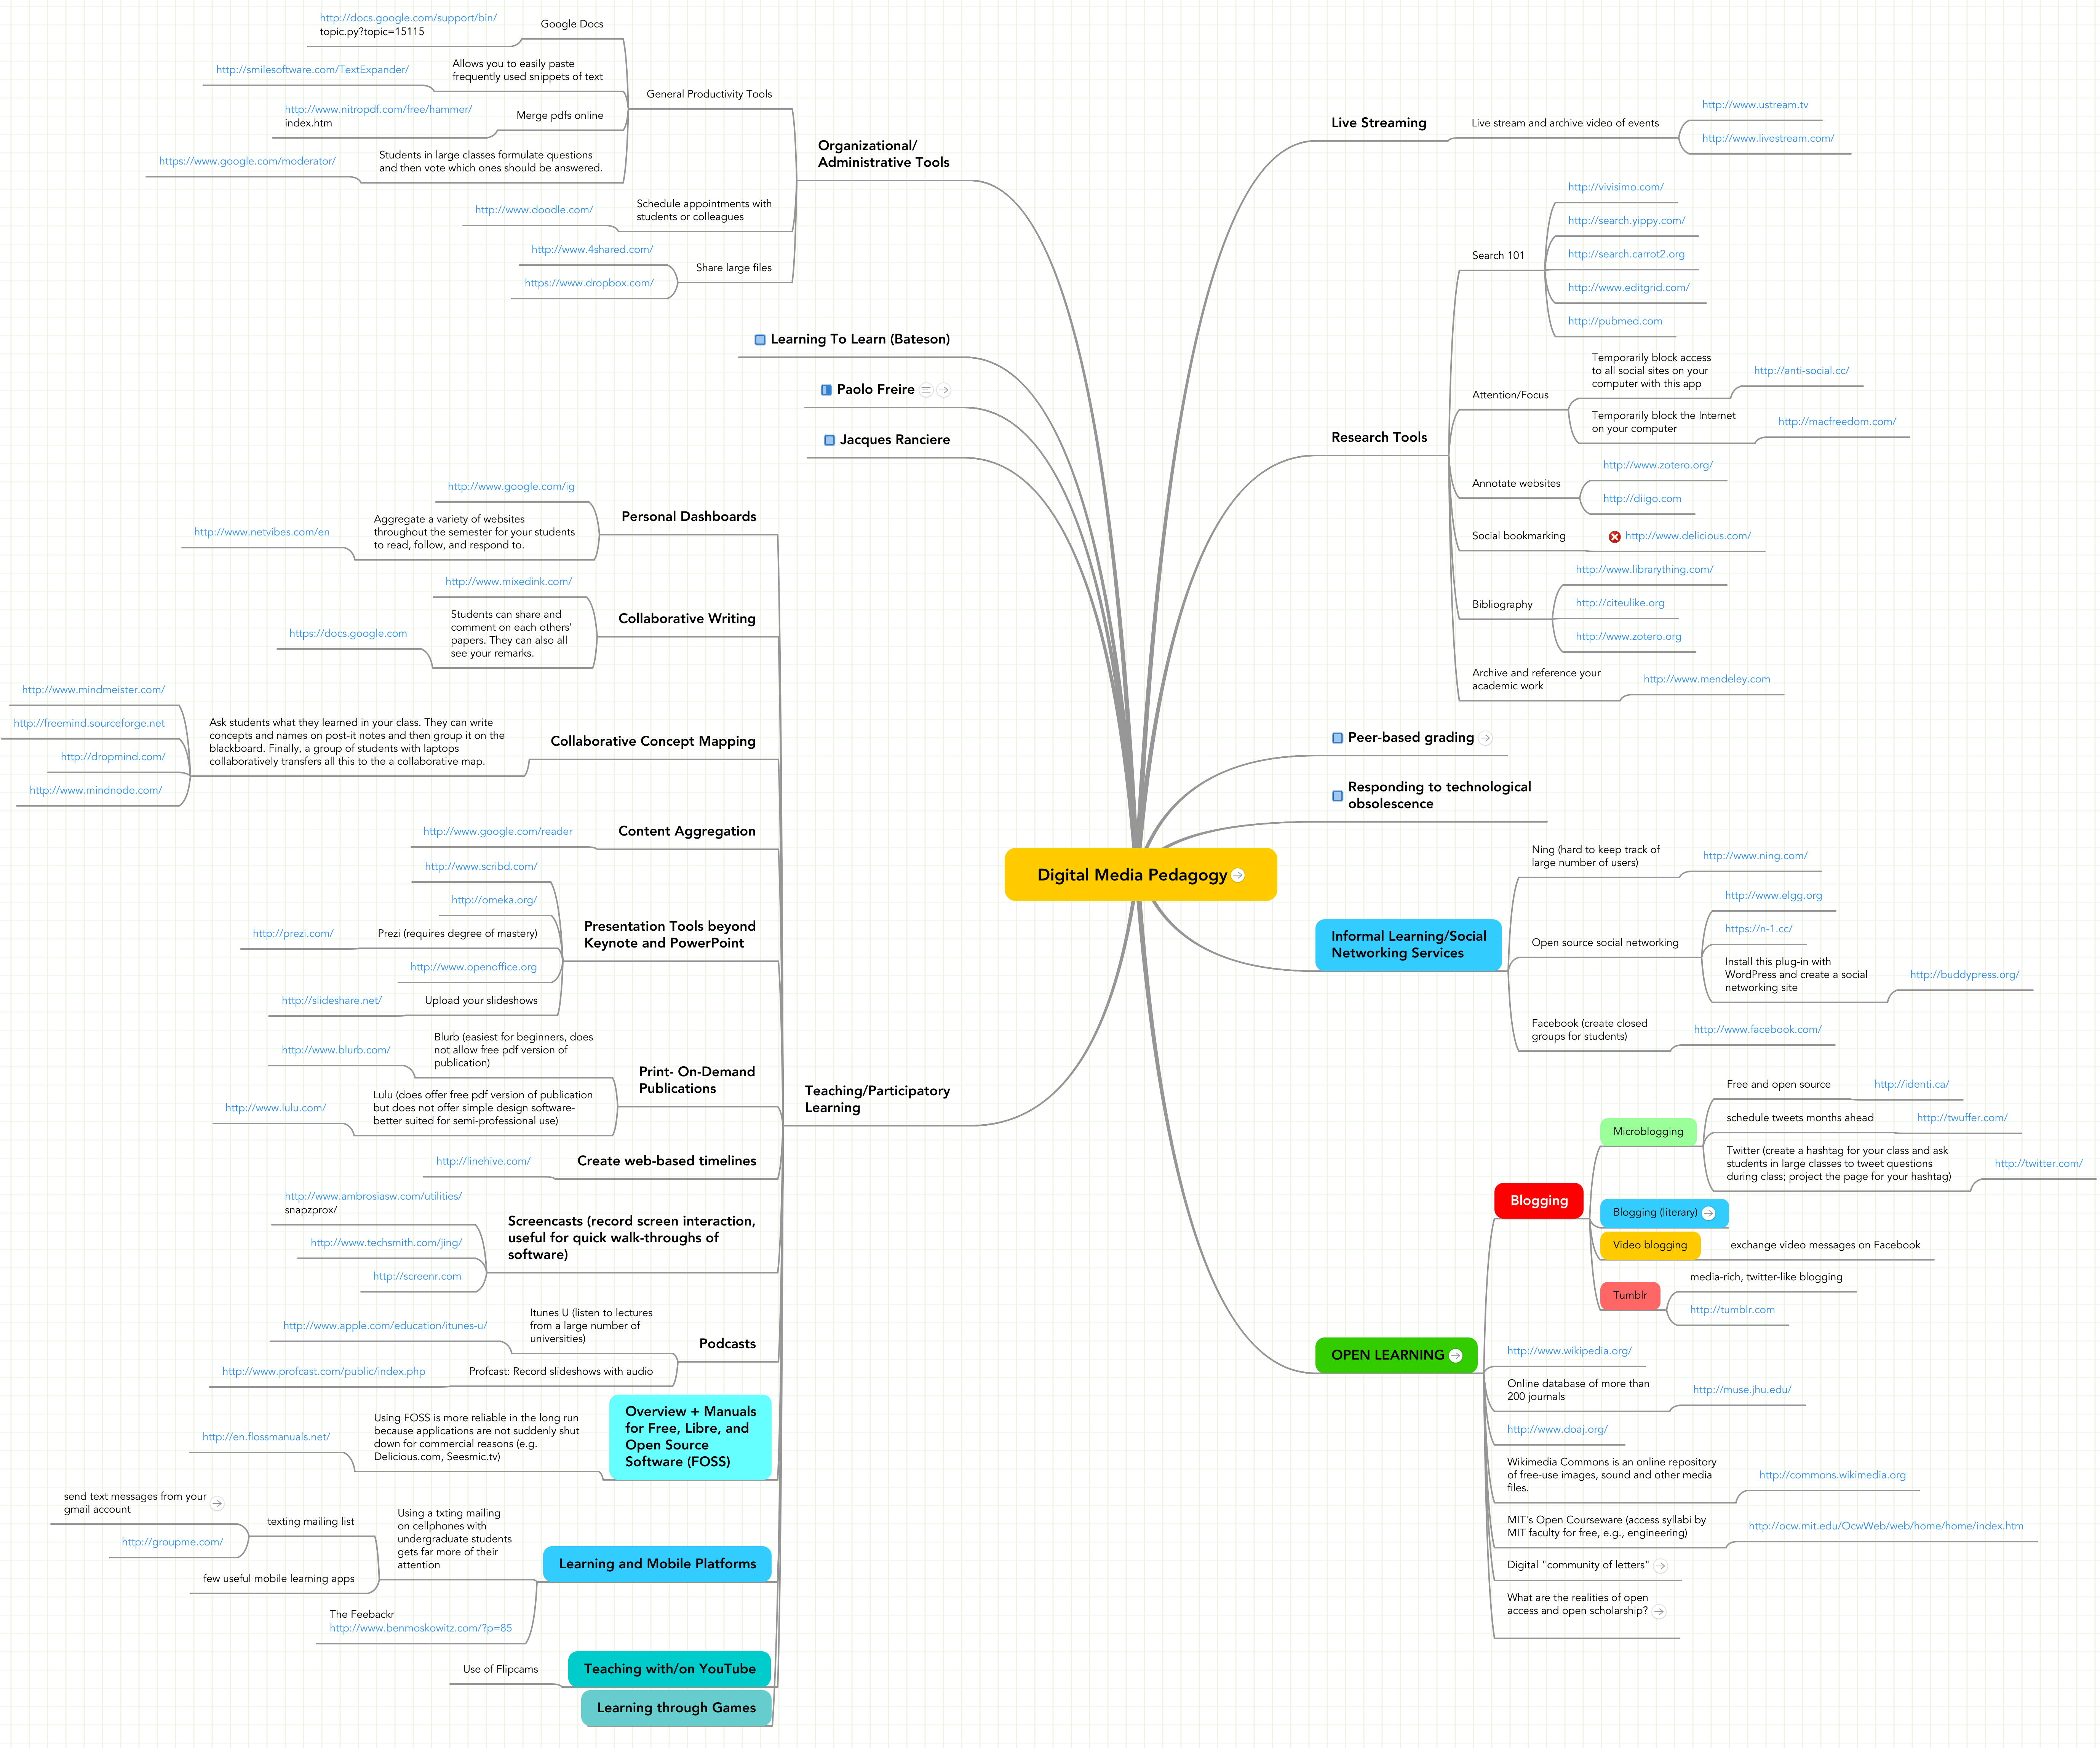 Mind map: Digital Media Pedagogy